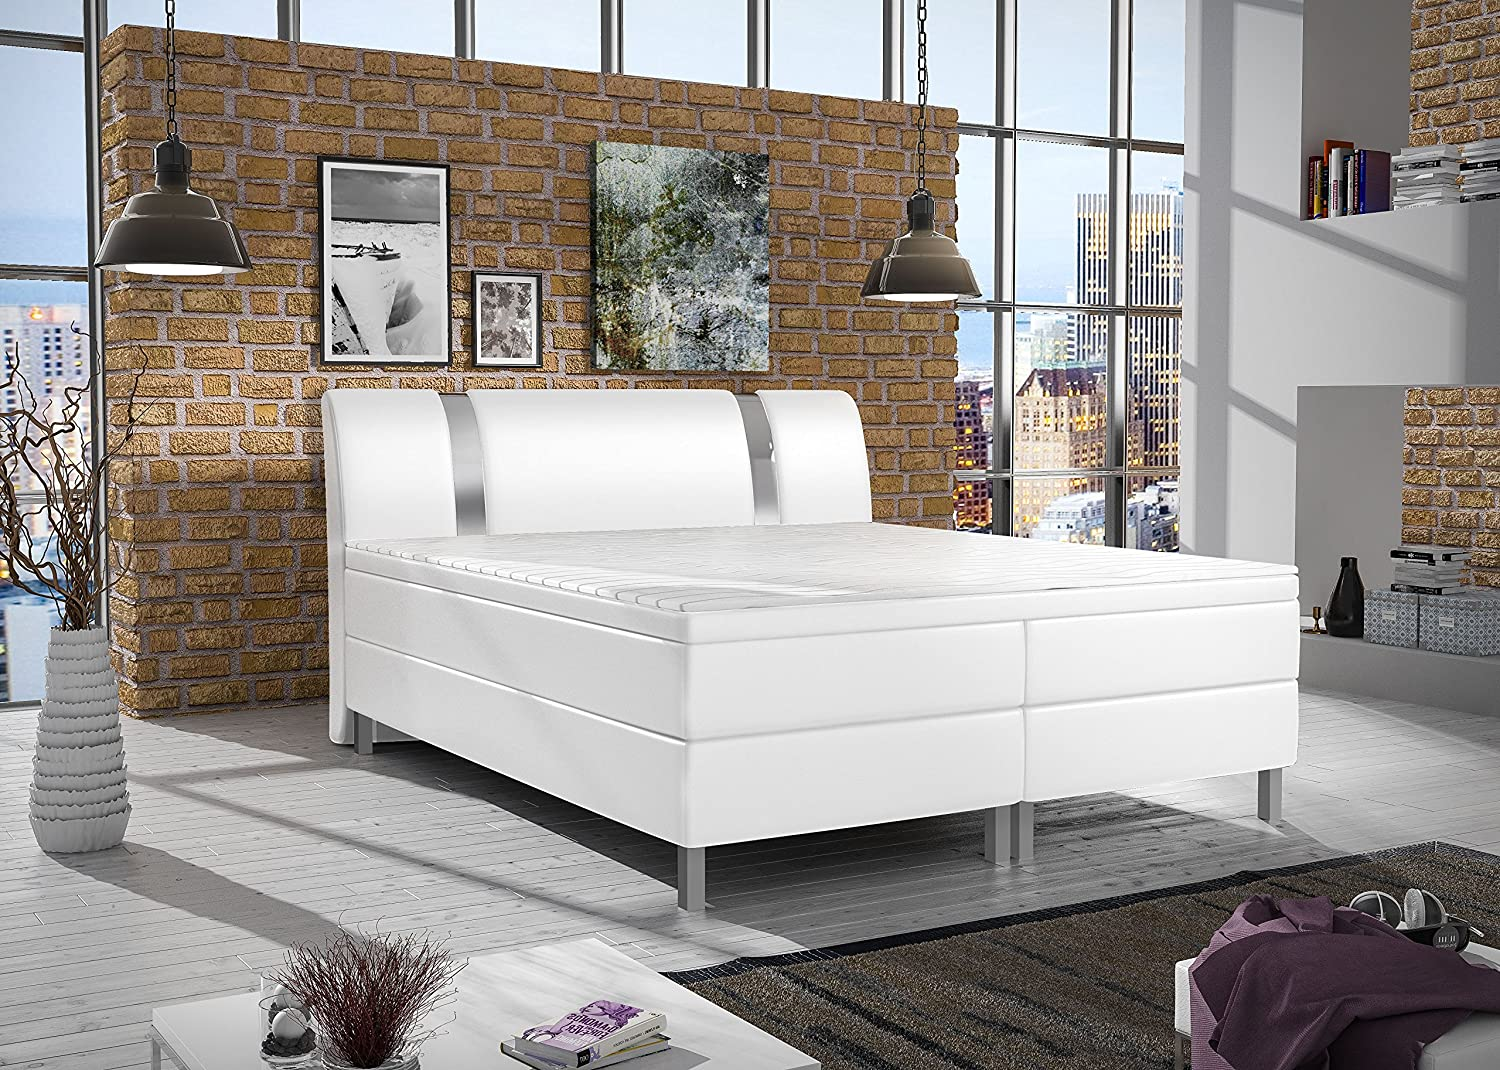 die besten boxspringbetten die besten boxspringbetten. Black Bedroom Furniture Sets. Home Design Ideas